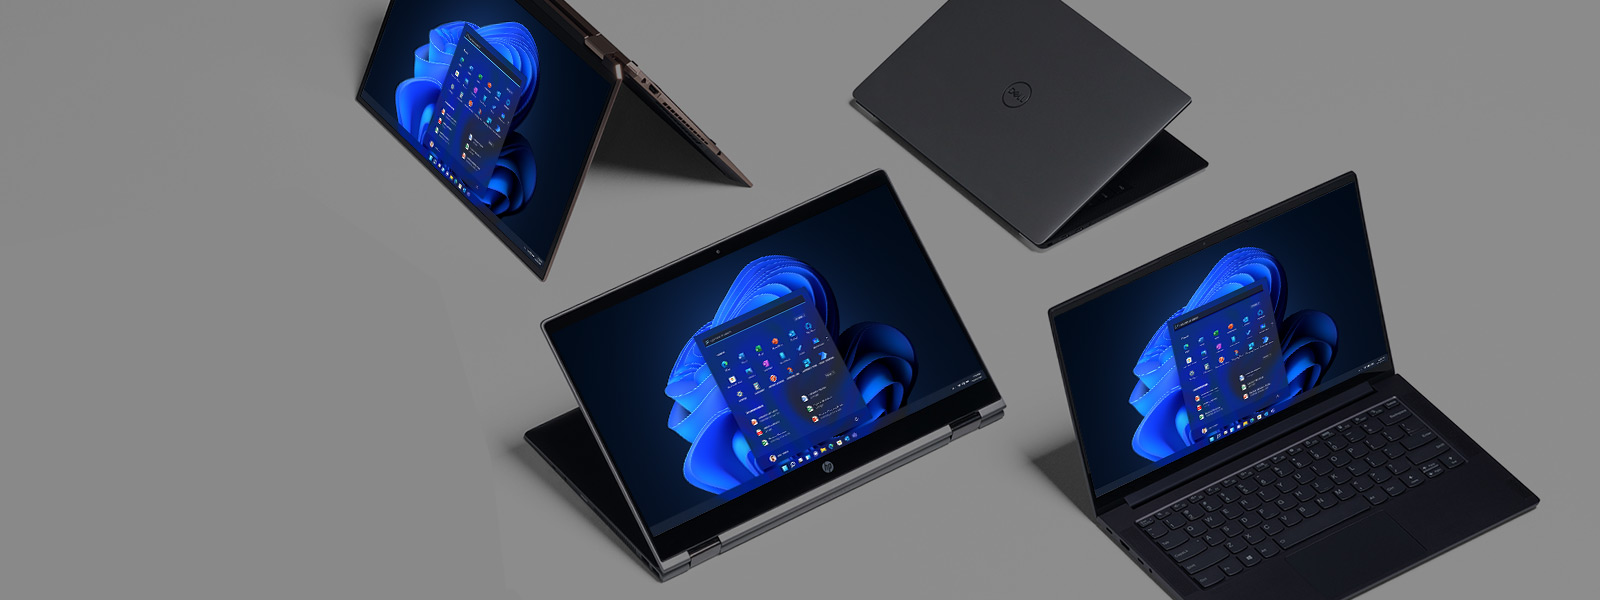 Four devices displaying the Windows 11 start screen